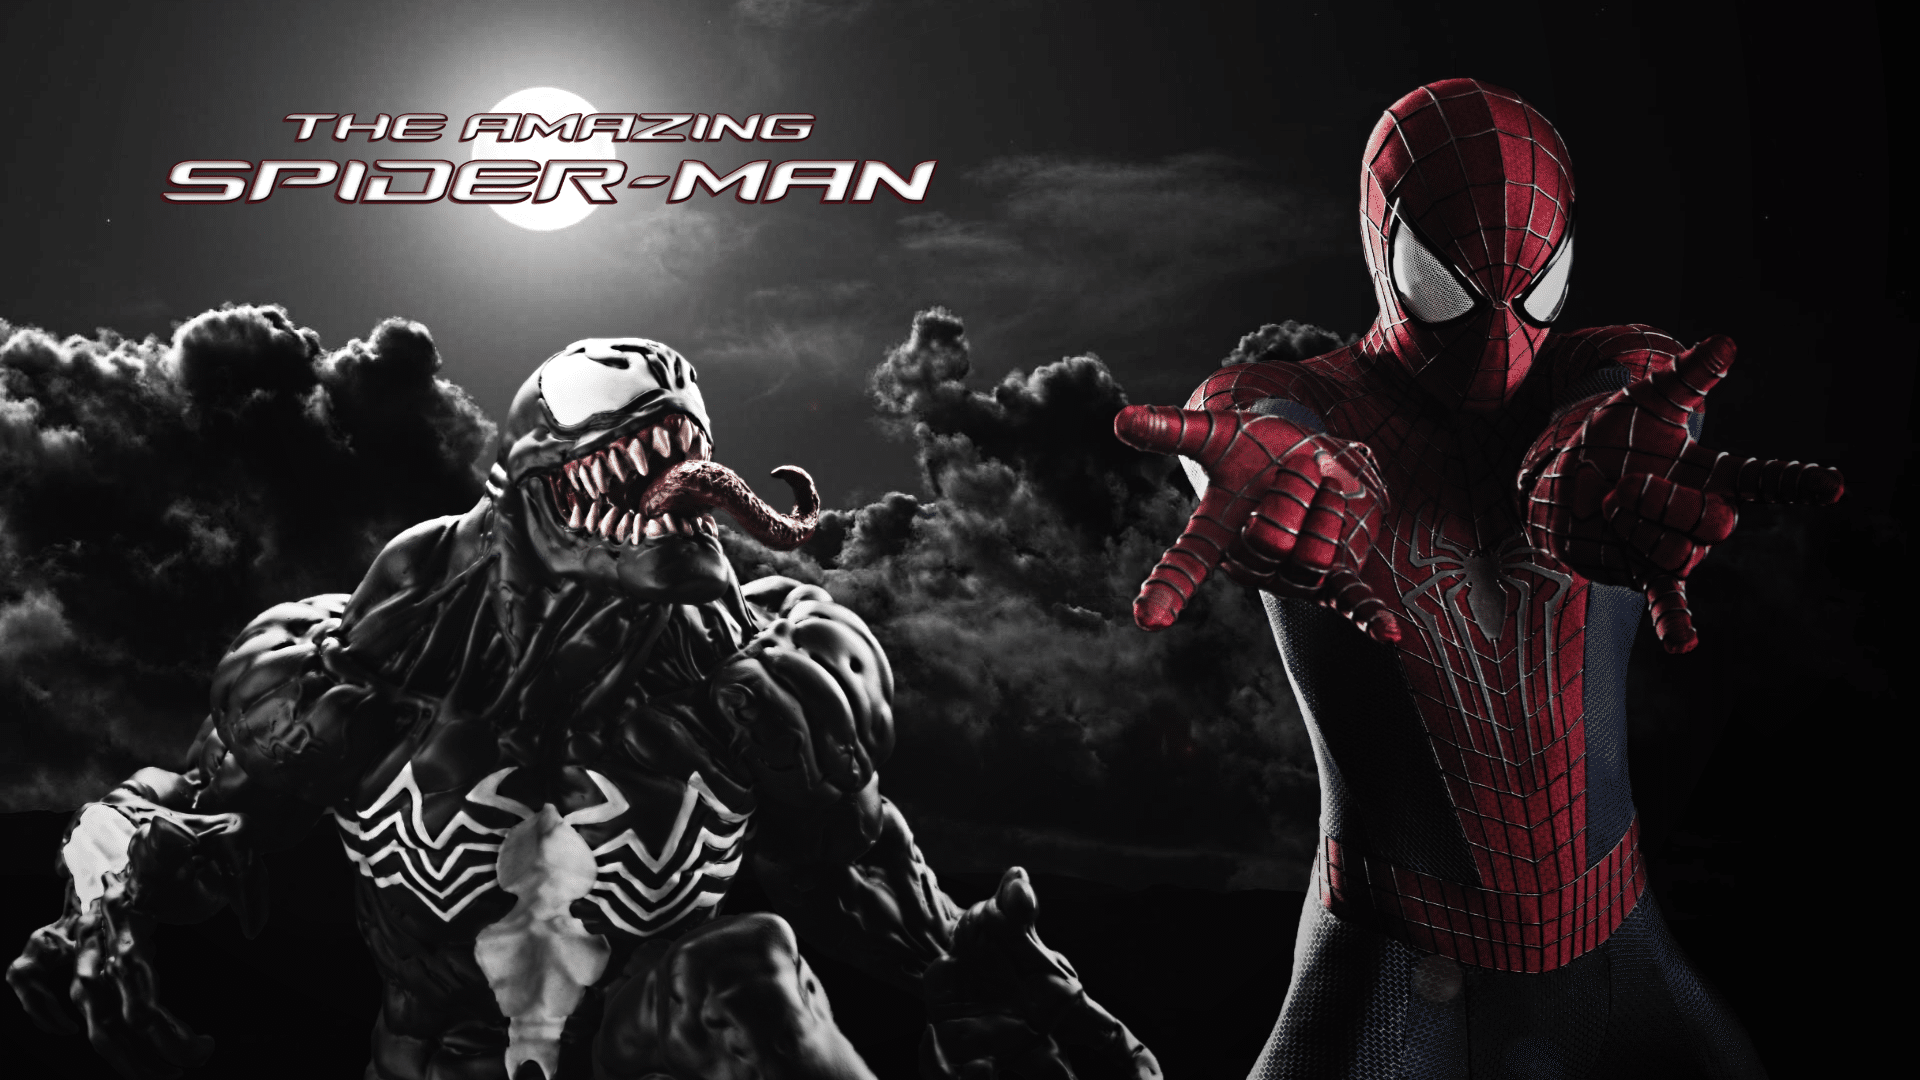 Дата выхода The Amazing Spider-Man 3